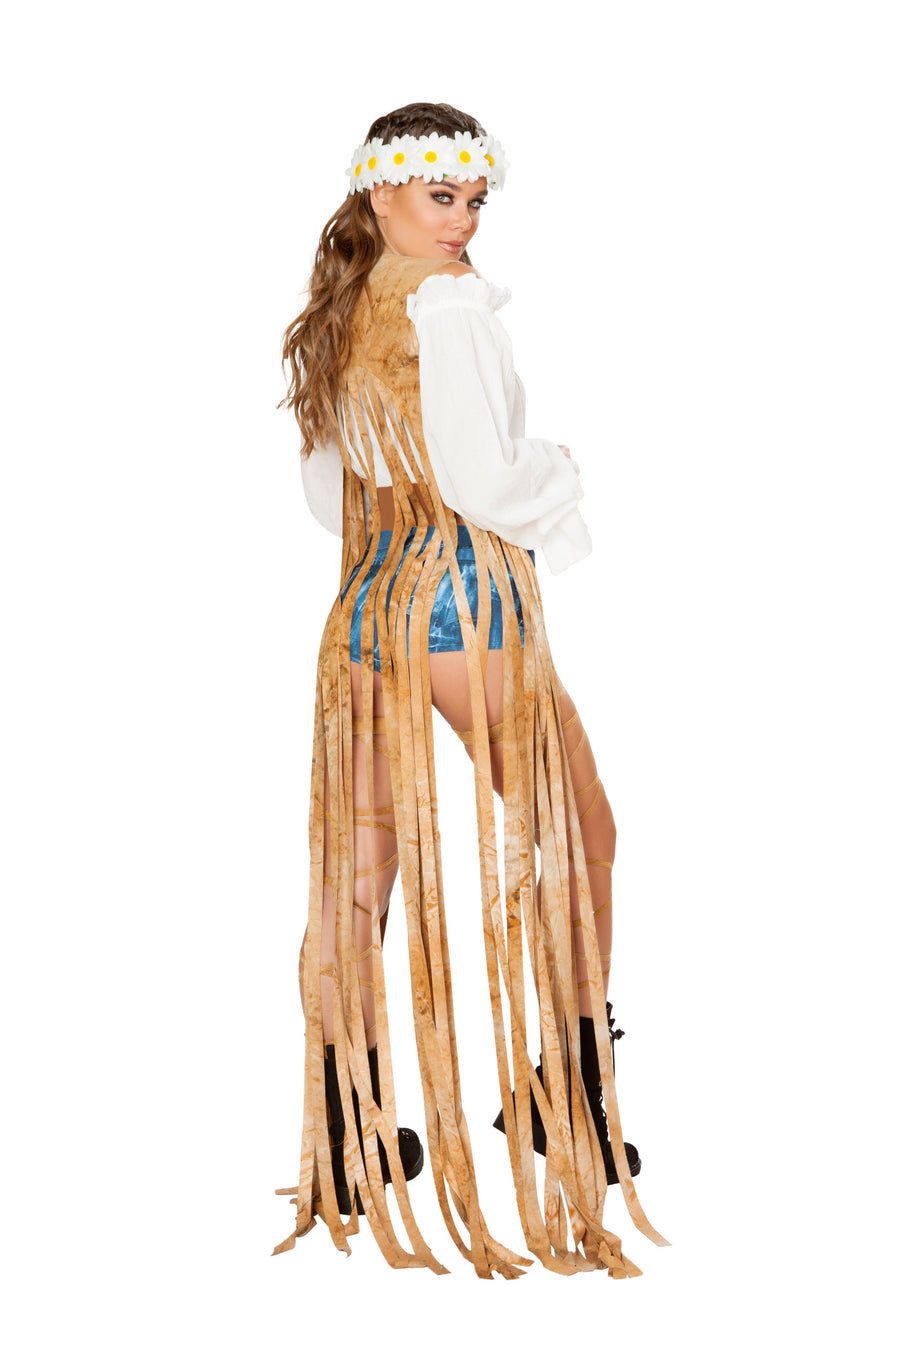 Brown Tie Dye Suede Vest with Long Fringe Detail - , Roma - YourLamode